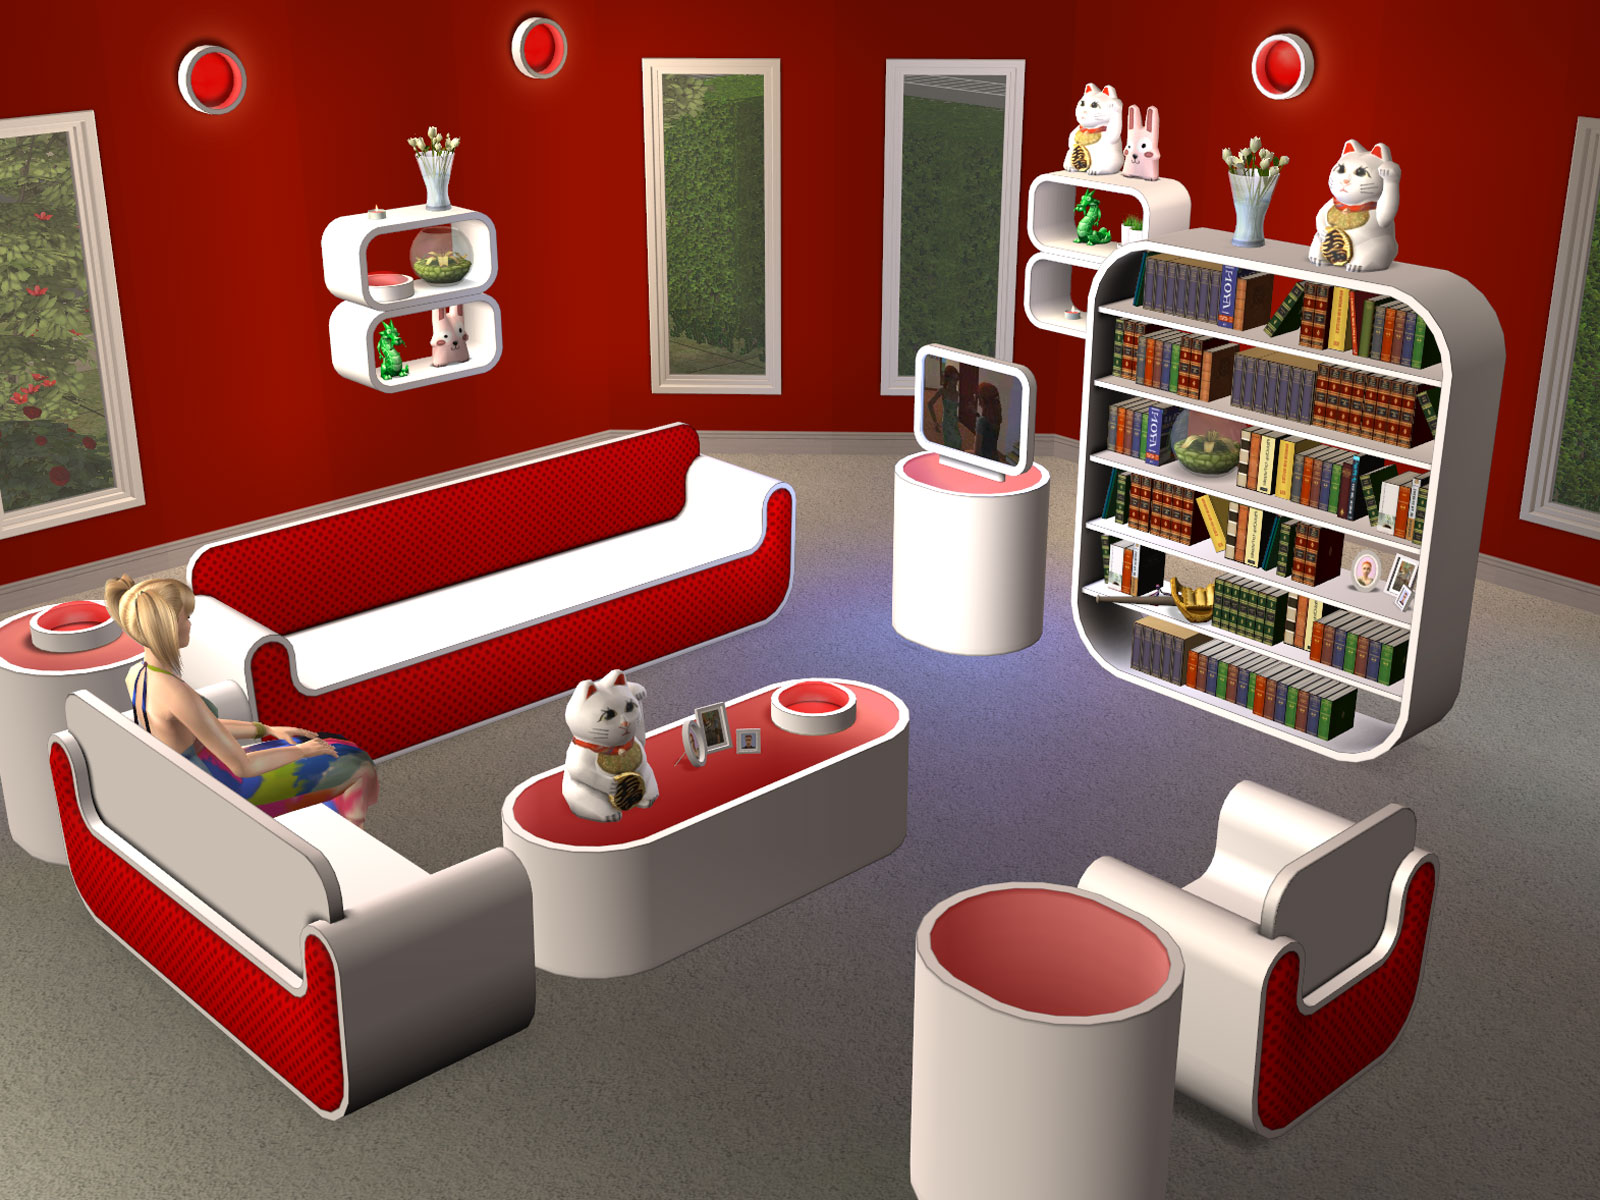 Wonderful image of Parsimonious The Sims 2: Furniture & Objects with #791B11 color and 1600x1200 pixels